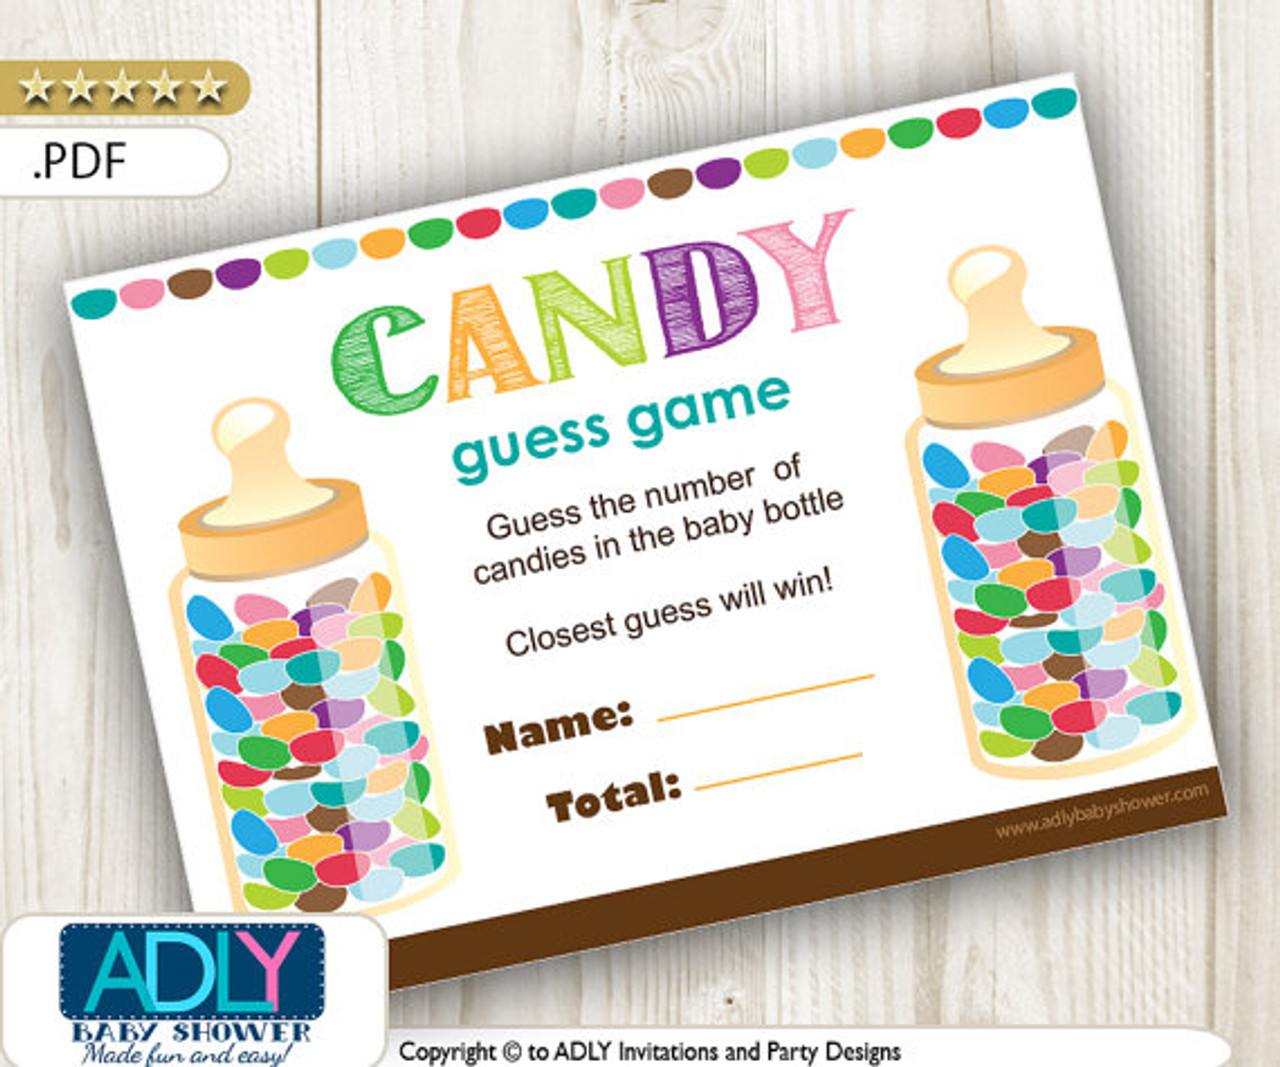 Guess Candy Printable Game Card Guess How Many Candies In The Baby Bottle How Many Candies Game Suitable For All Themes Neutral Adly Invitations And Digital Party Designs